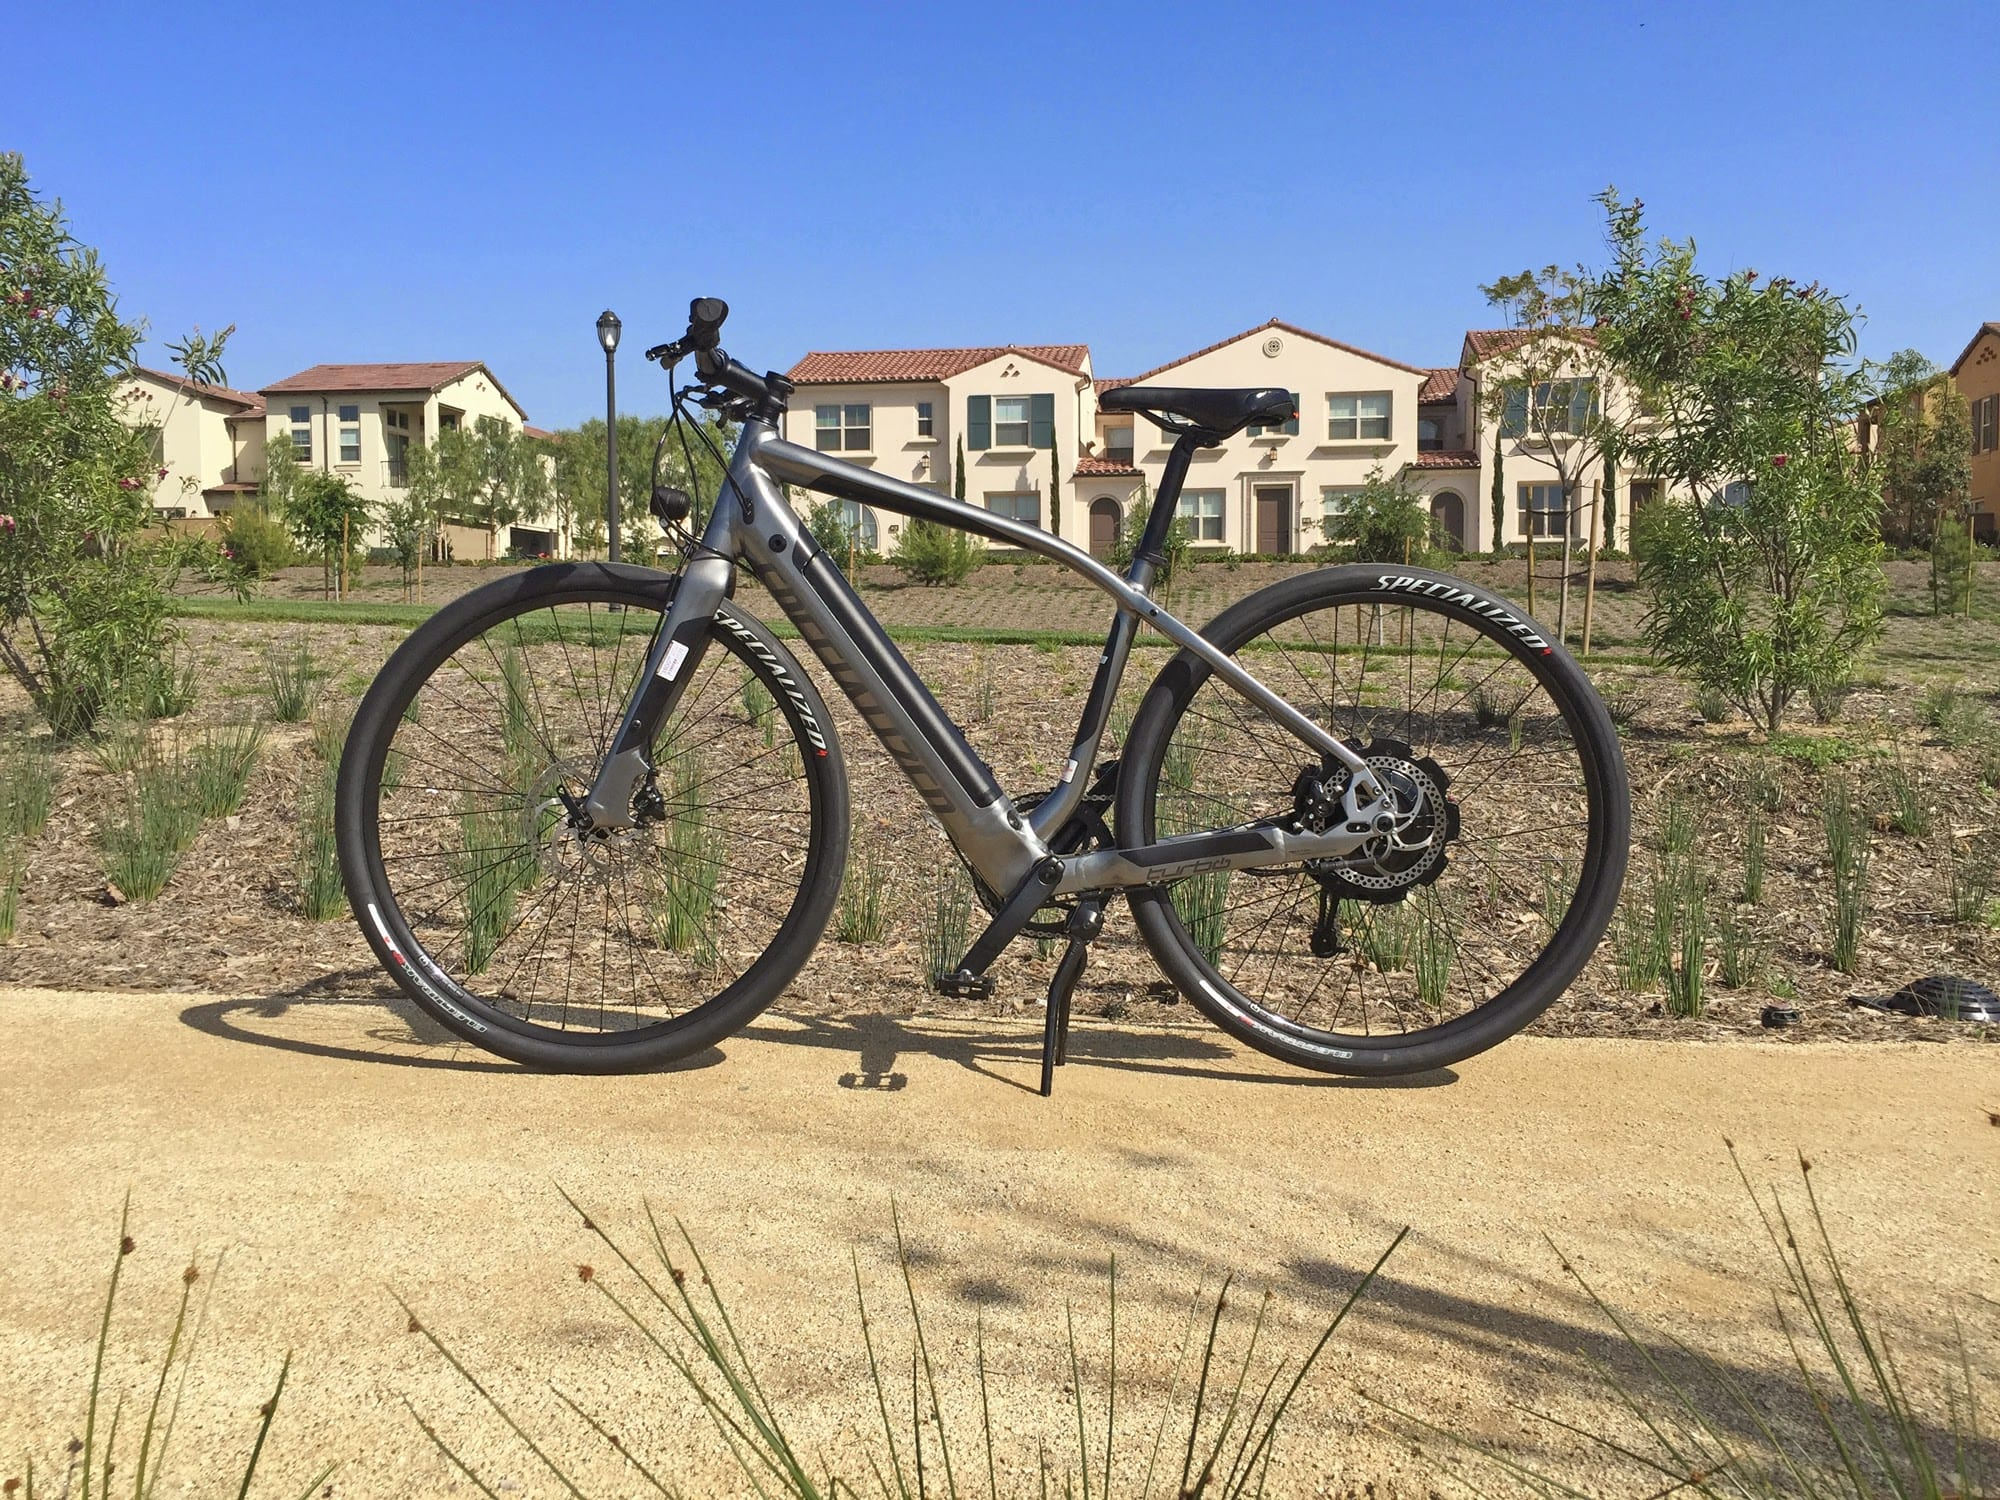 cafef4c197e Specialized Turbo Review - Prices